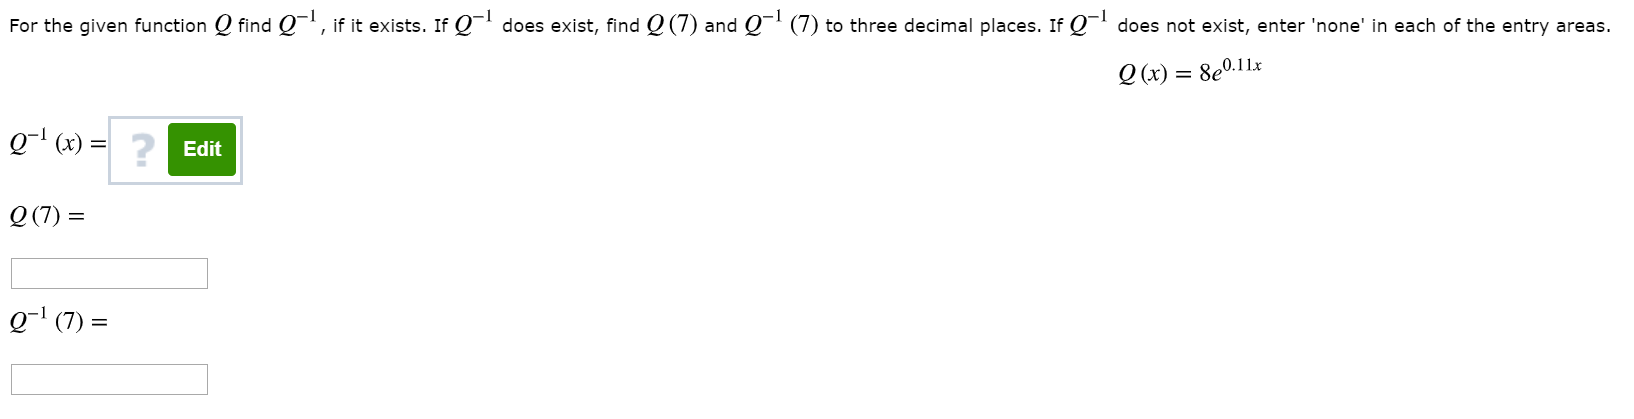 For the given function Q find Q¬', if it exists. If Q does exist, find Q (7) and Q¯ (7) to three decimal places. If Q¬' does not exist, enter 'none' in each of the entry areas. 8e0.11x О (х) — g-' (x) = Edit Q (7) = Q (7) =